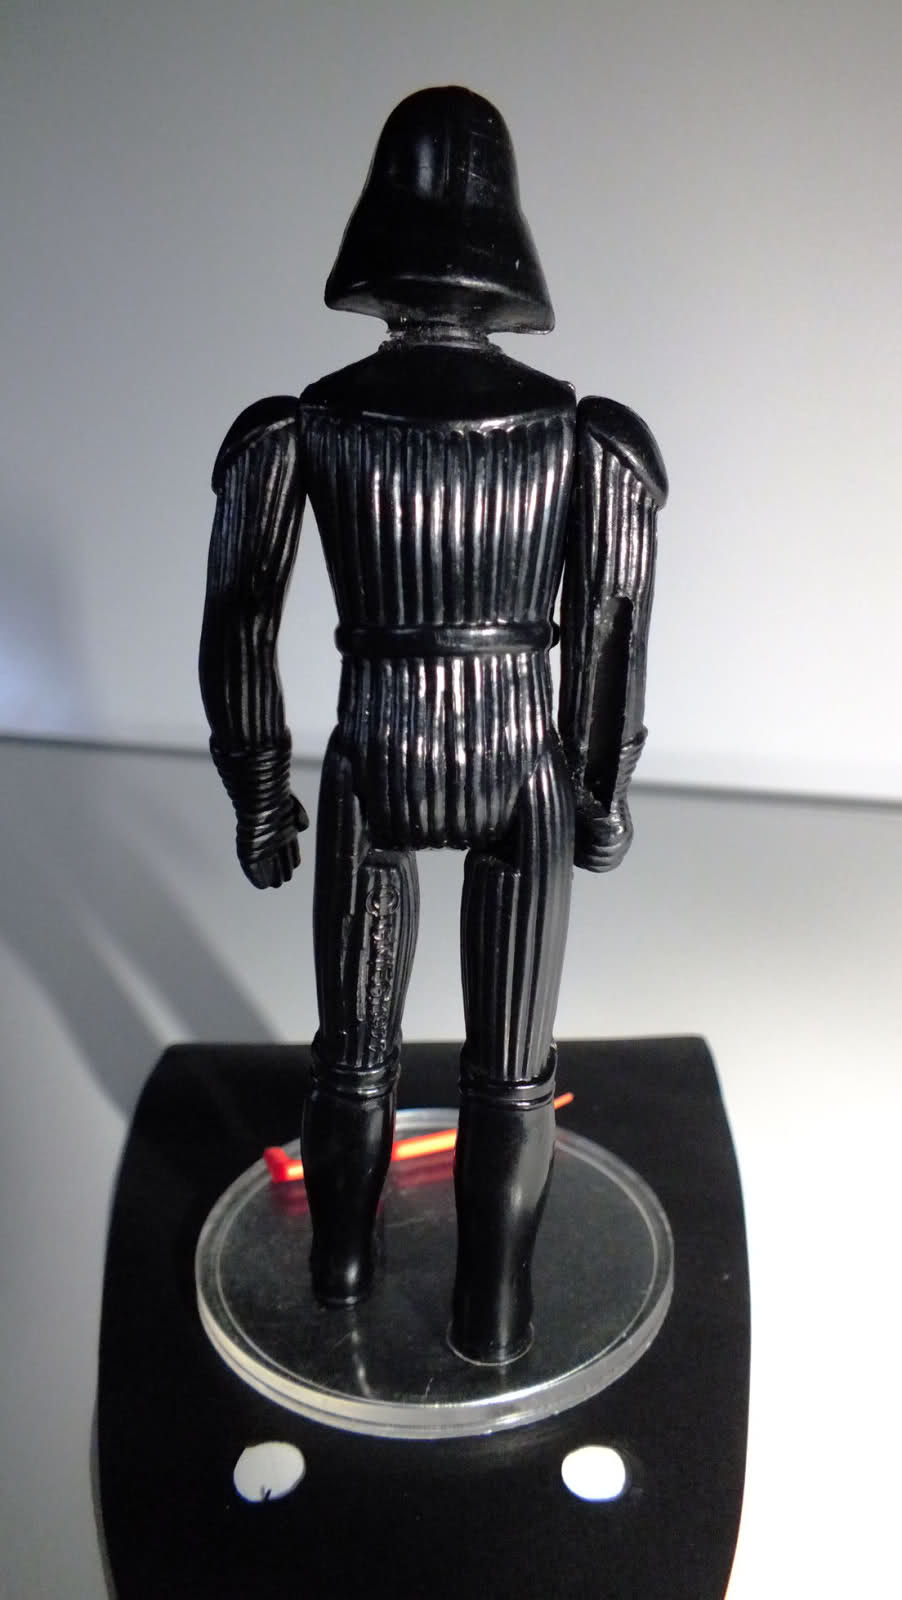 Are either of these 'Clipper' Darth Vader Figures? 208gwhh